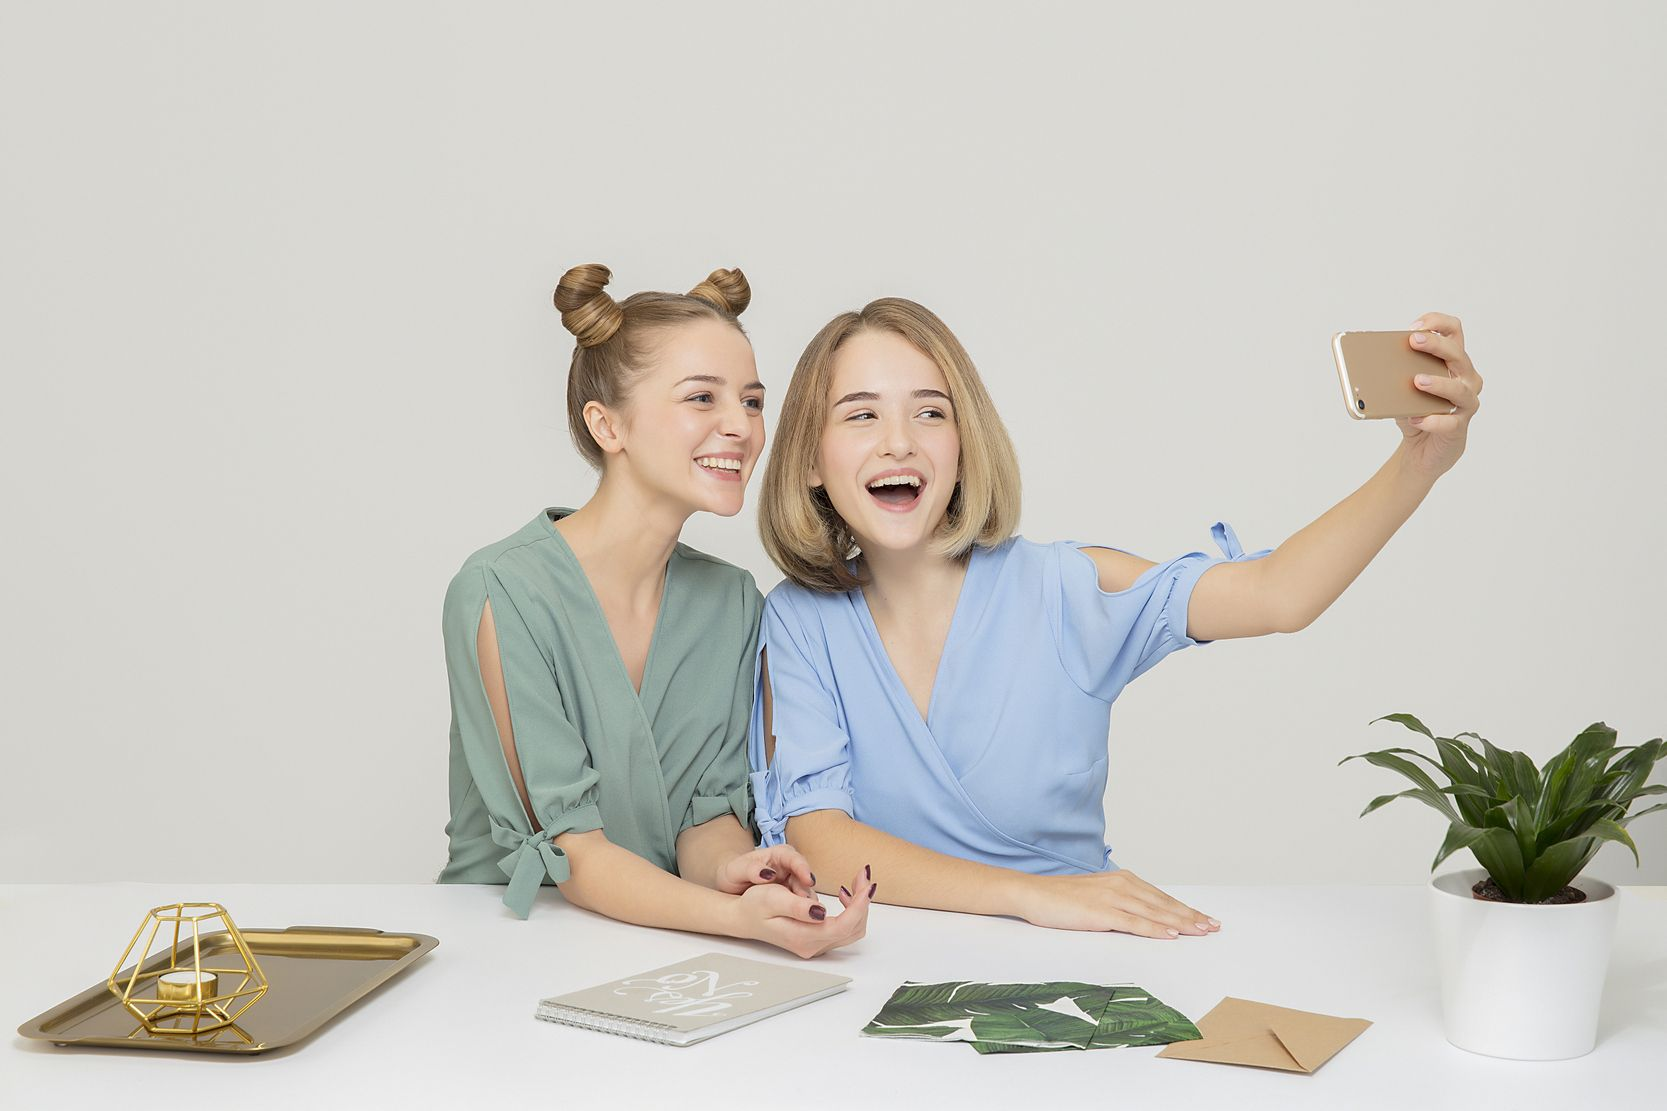 Friends Only: a special collection of Friendship Day images: Taking a selfie with the bestfriend